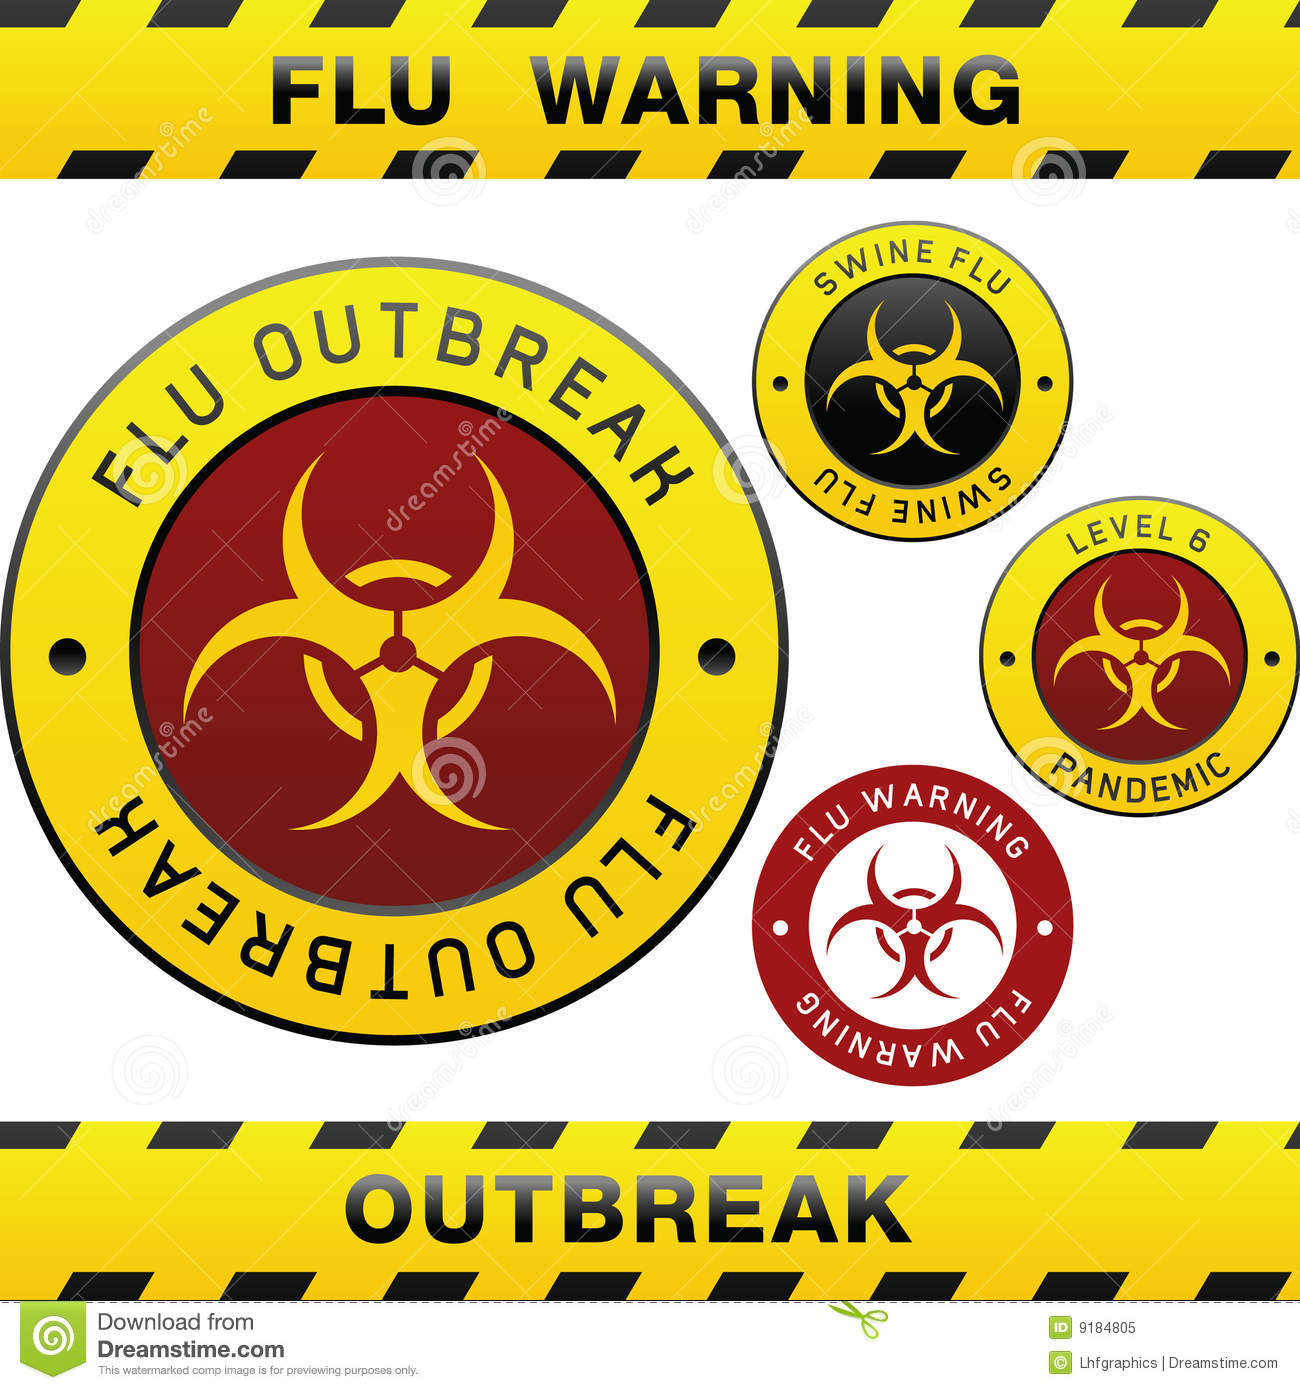 Outbreak Backgrounds on Wallpapers Vista